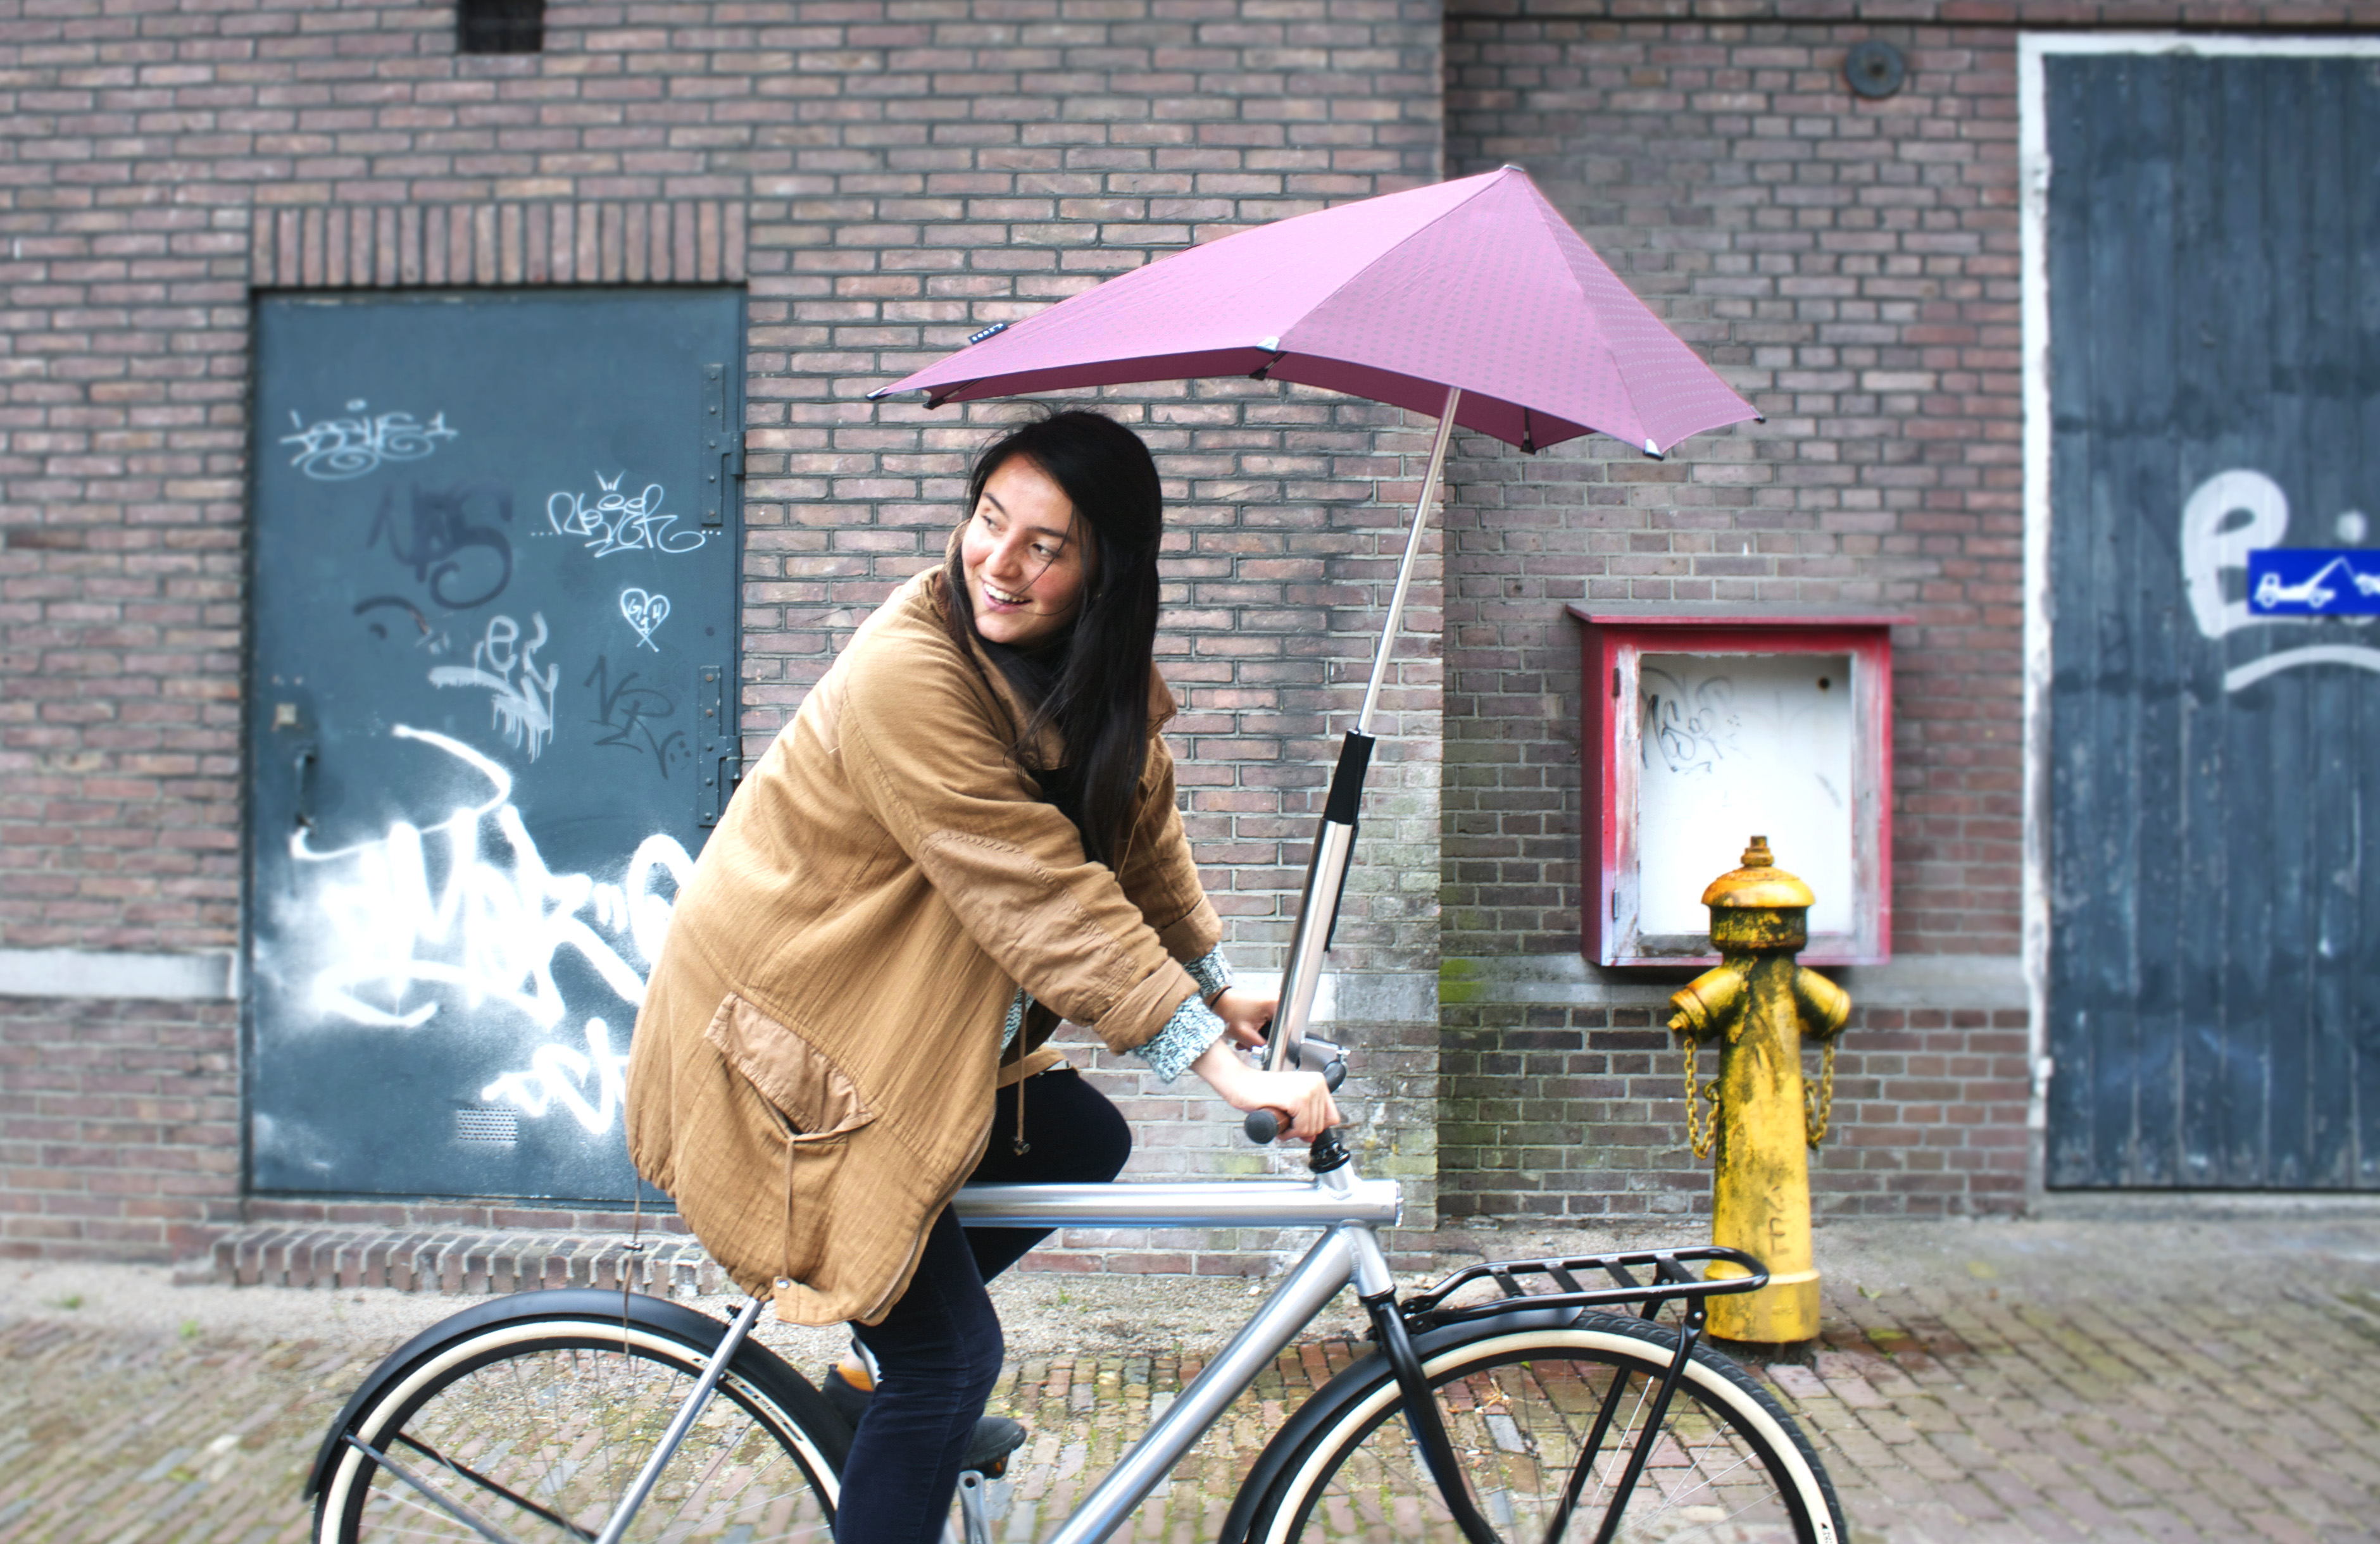 Dutch company Senz's handlebar-mounted umbrella holder keeps bike commuters dry on their way to work.